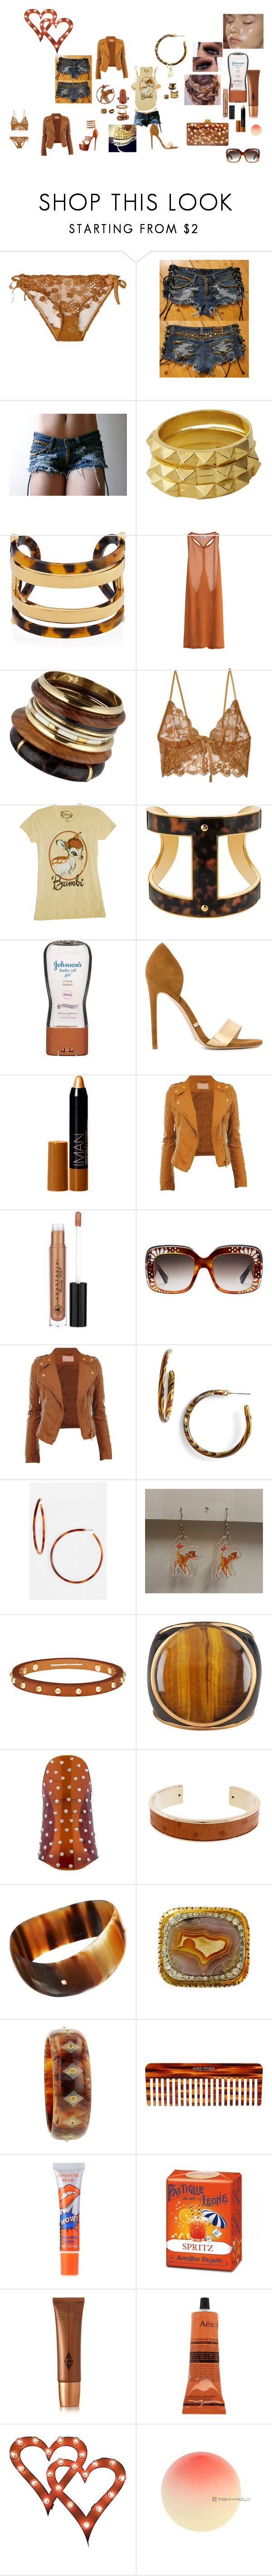 Bambme by mskillgalore on Polyvore featuring Mighty Fine, CO, For Love & Lemons, MTWTFSS Weekday, Gianni Renzi, L. Erickson, Disney, Tom Ford, Mark Davis and Tory Burch